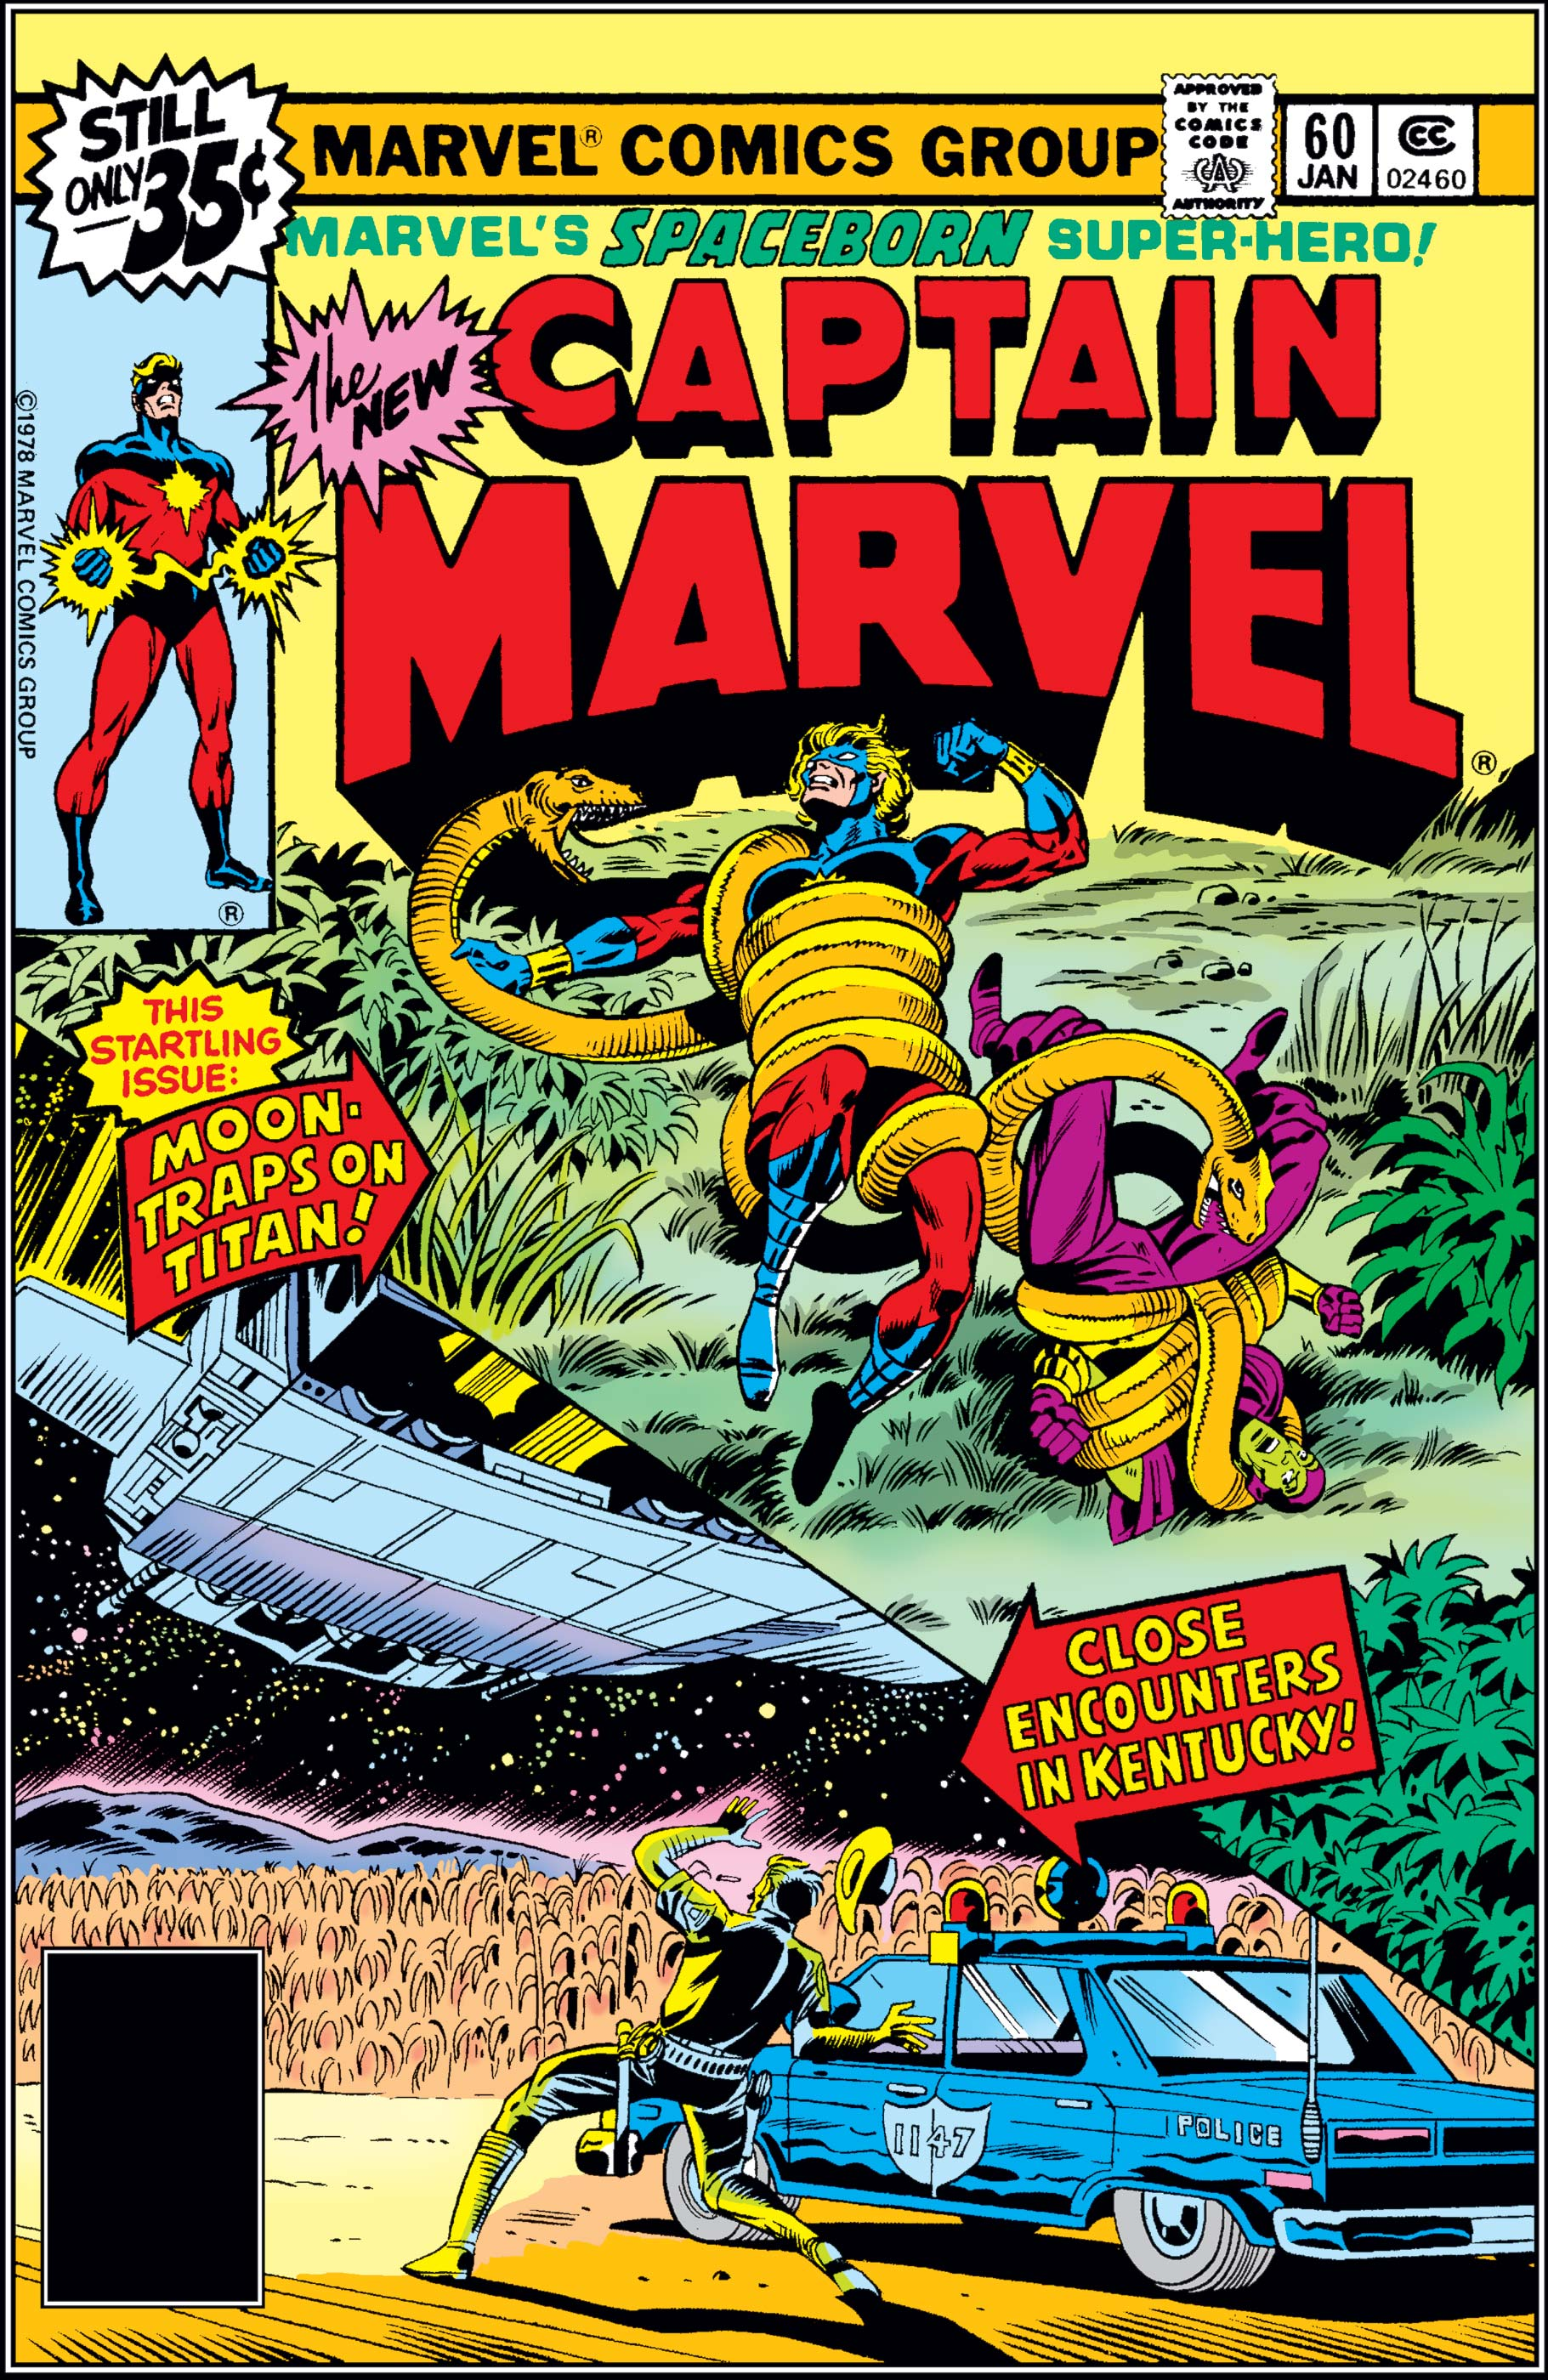 Captain Marvel (1968) #60